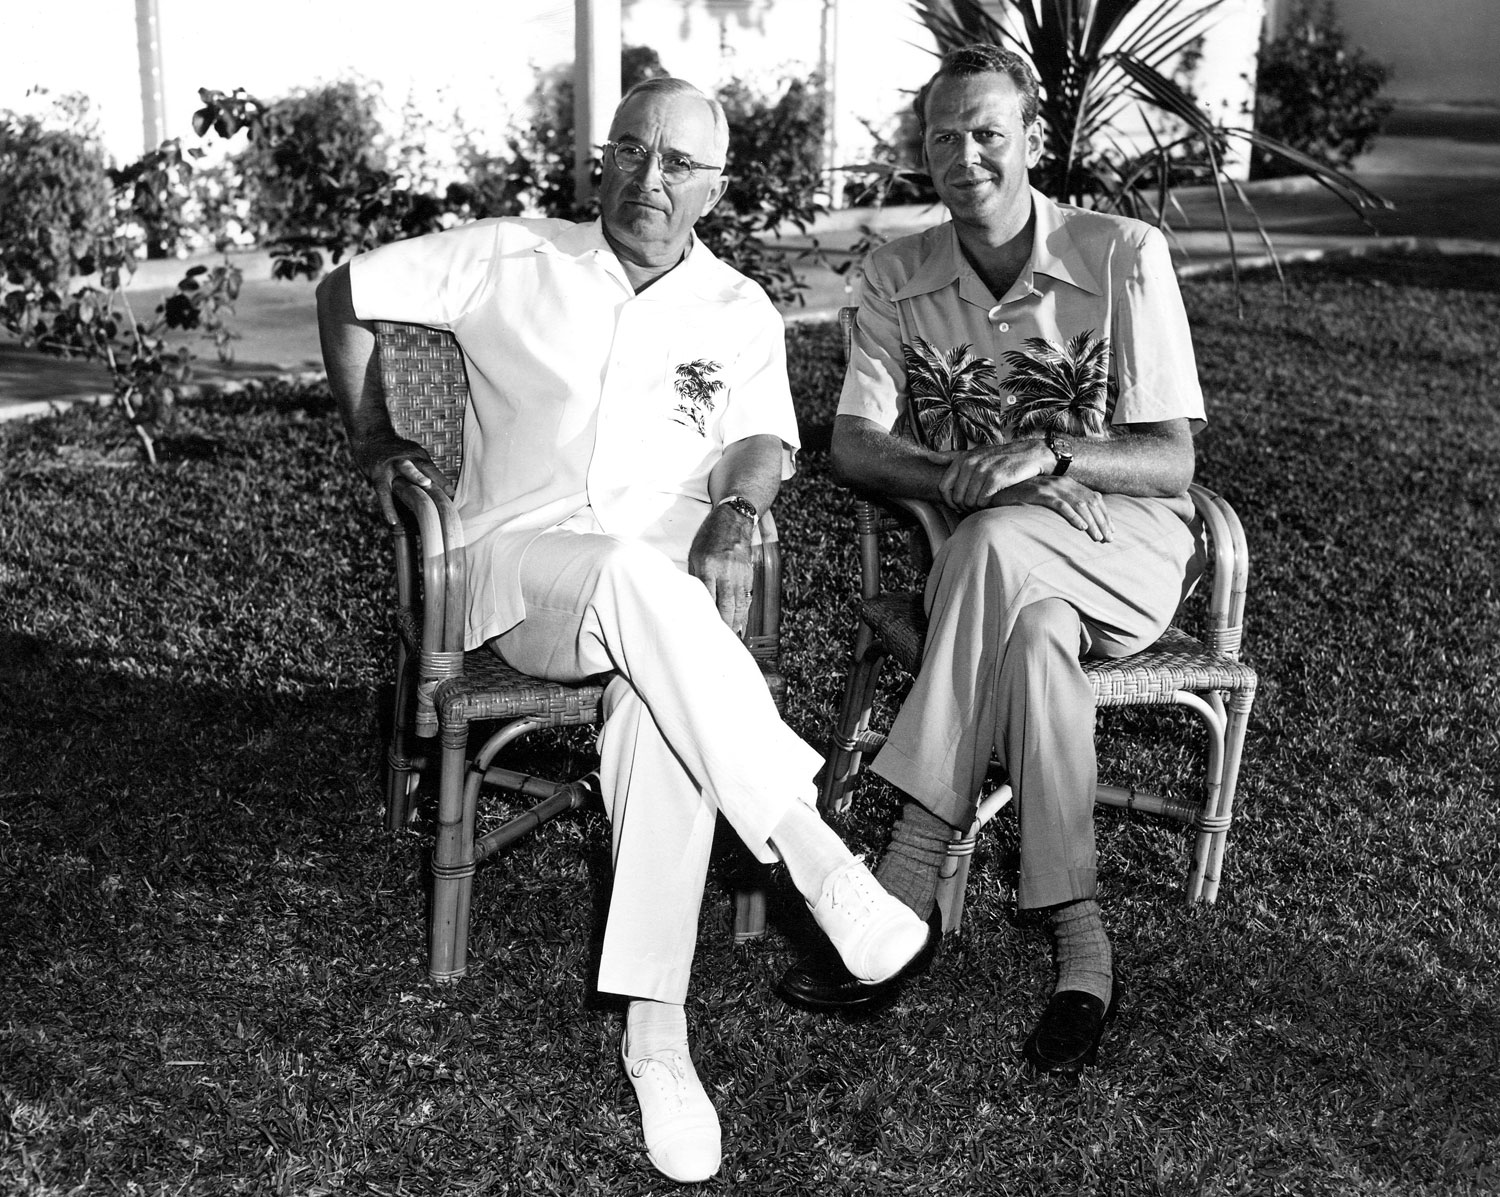 Harry-Truman-sits-with-White-House-counsel-Clark-Clifford-in-Key-West-in-1949